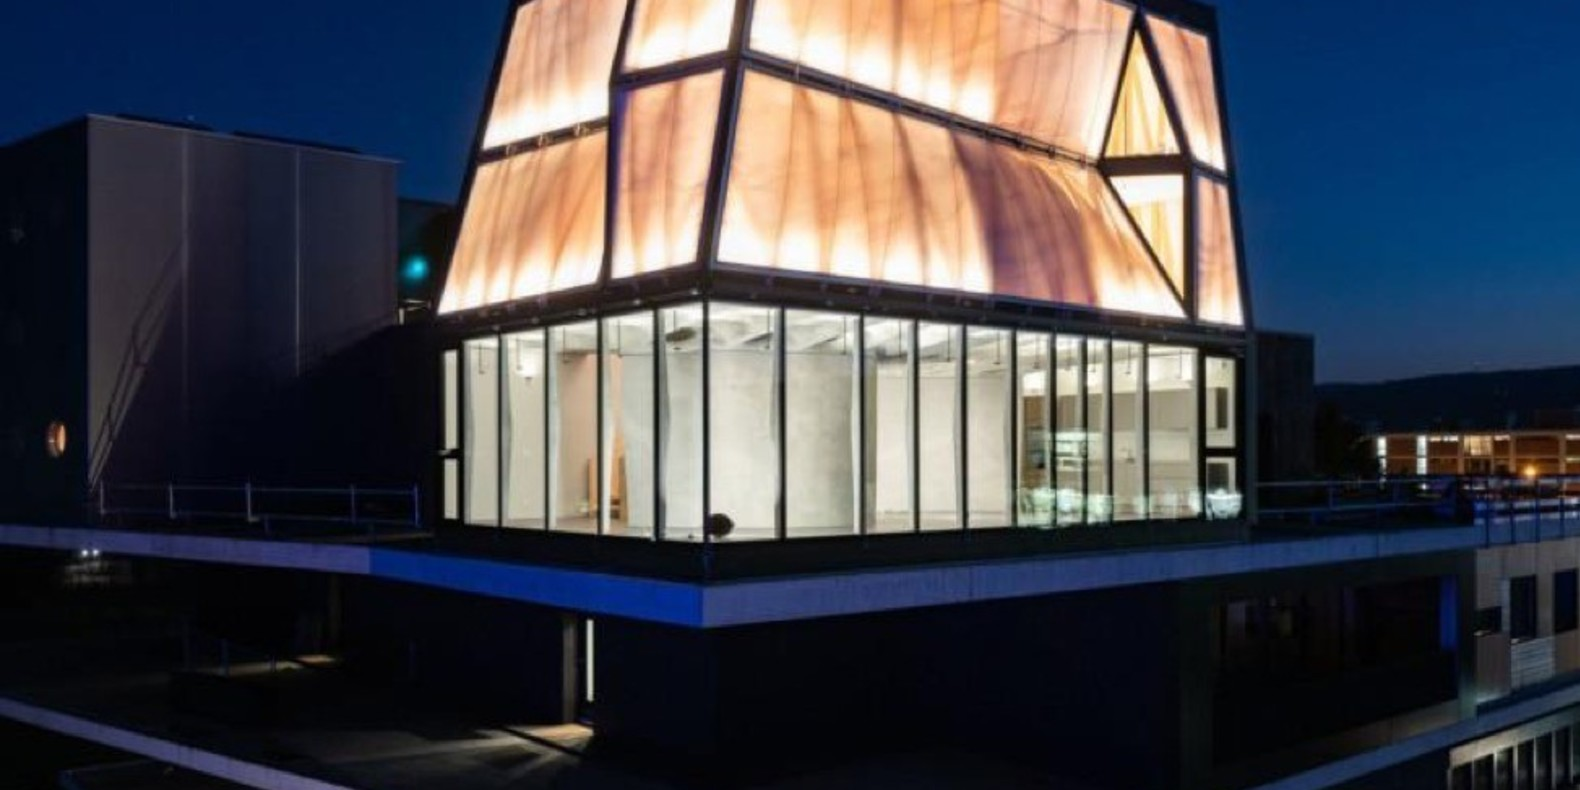 Best 3D Printed Buildings Architecture Students Must Check Out.